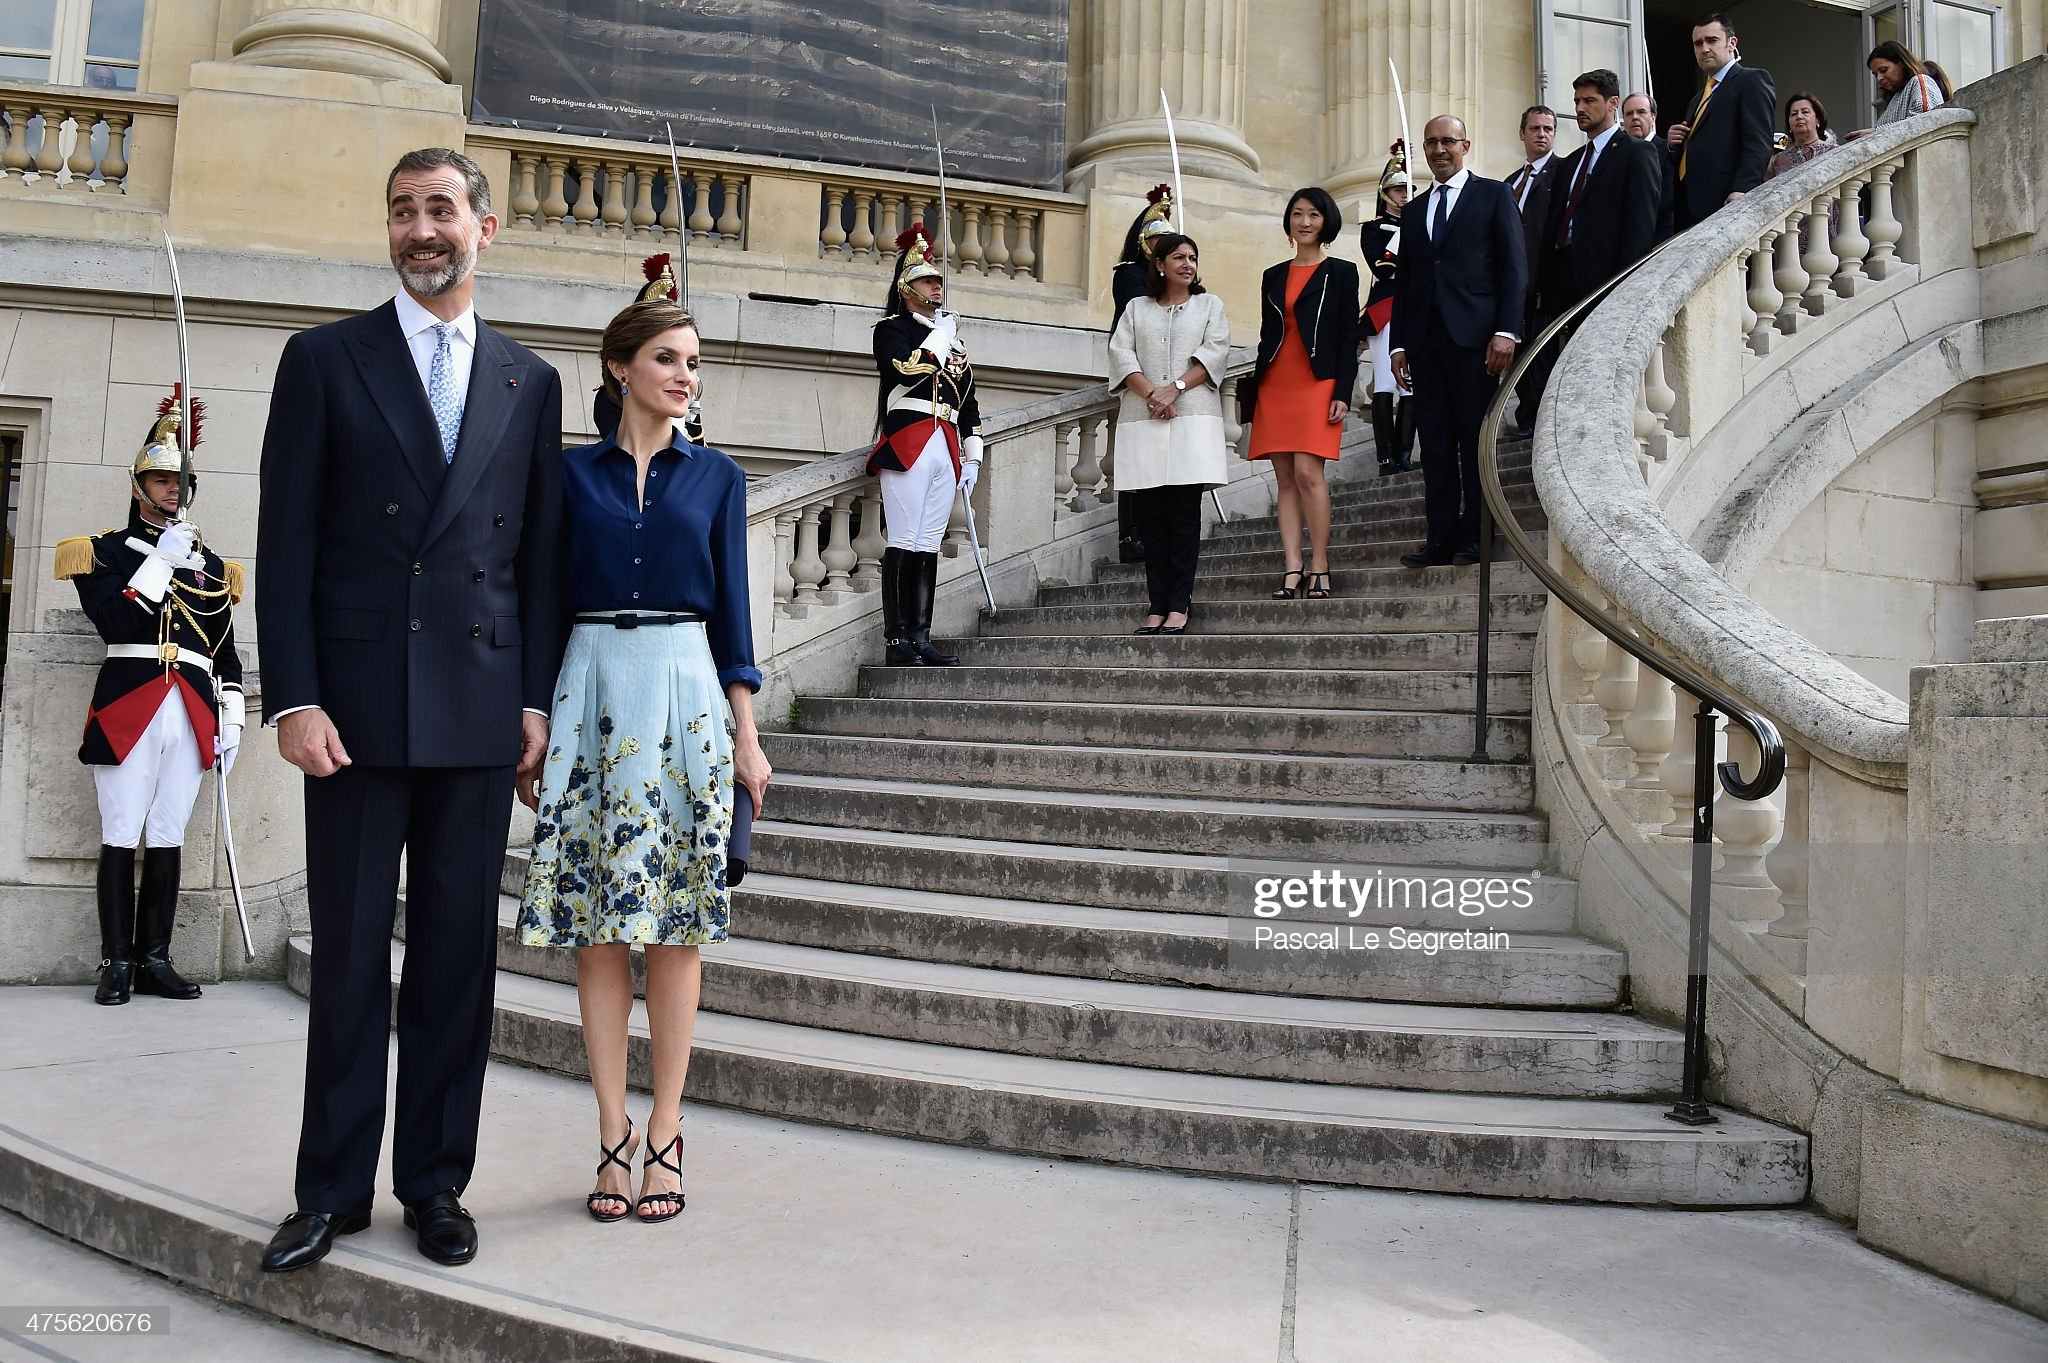 king-felipe-of-spain-and-queen-letizia-of-spain-attend-the-velasquez-picture-id475620676